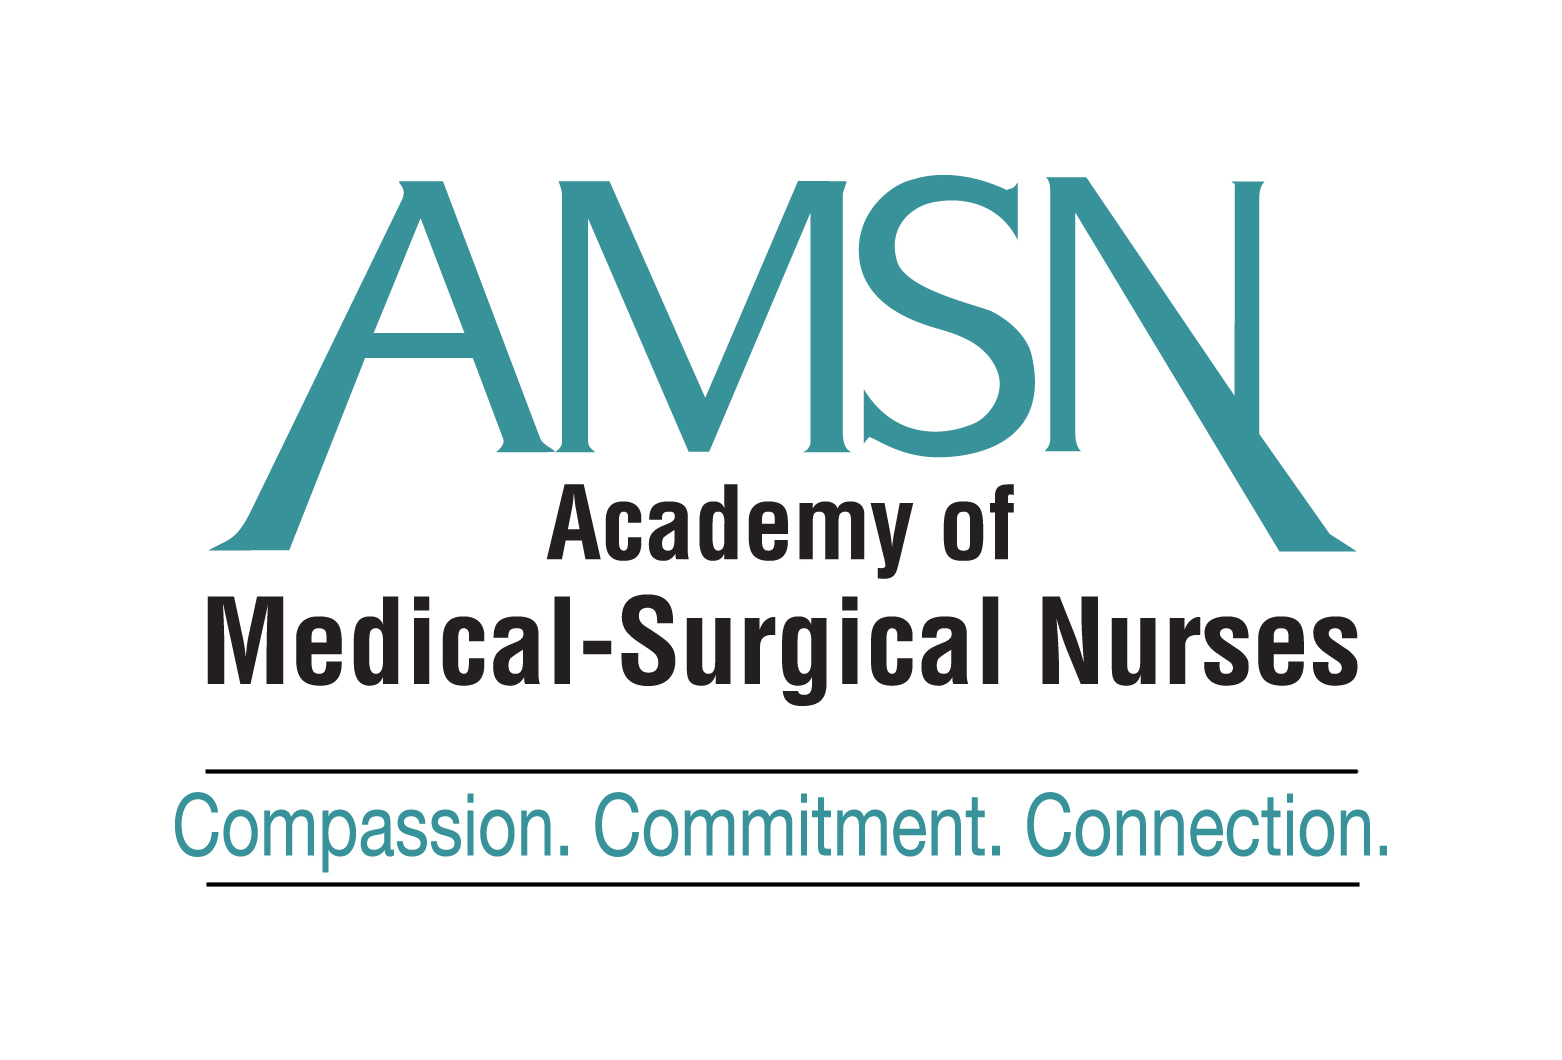 Academy of Medical-Surgical Nurses AMSN